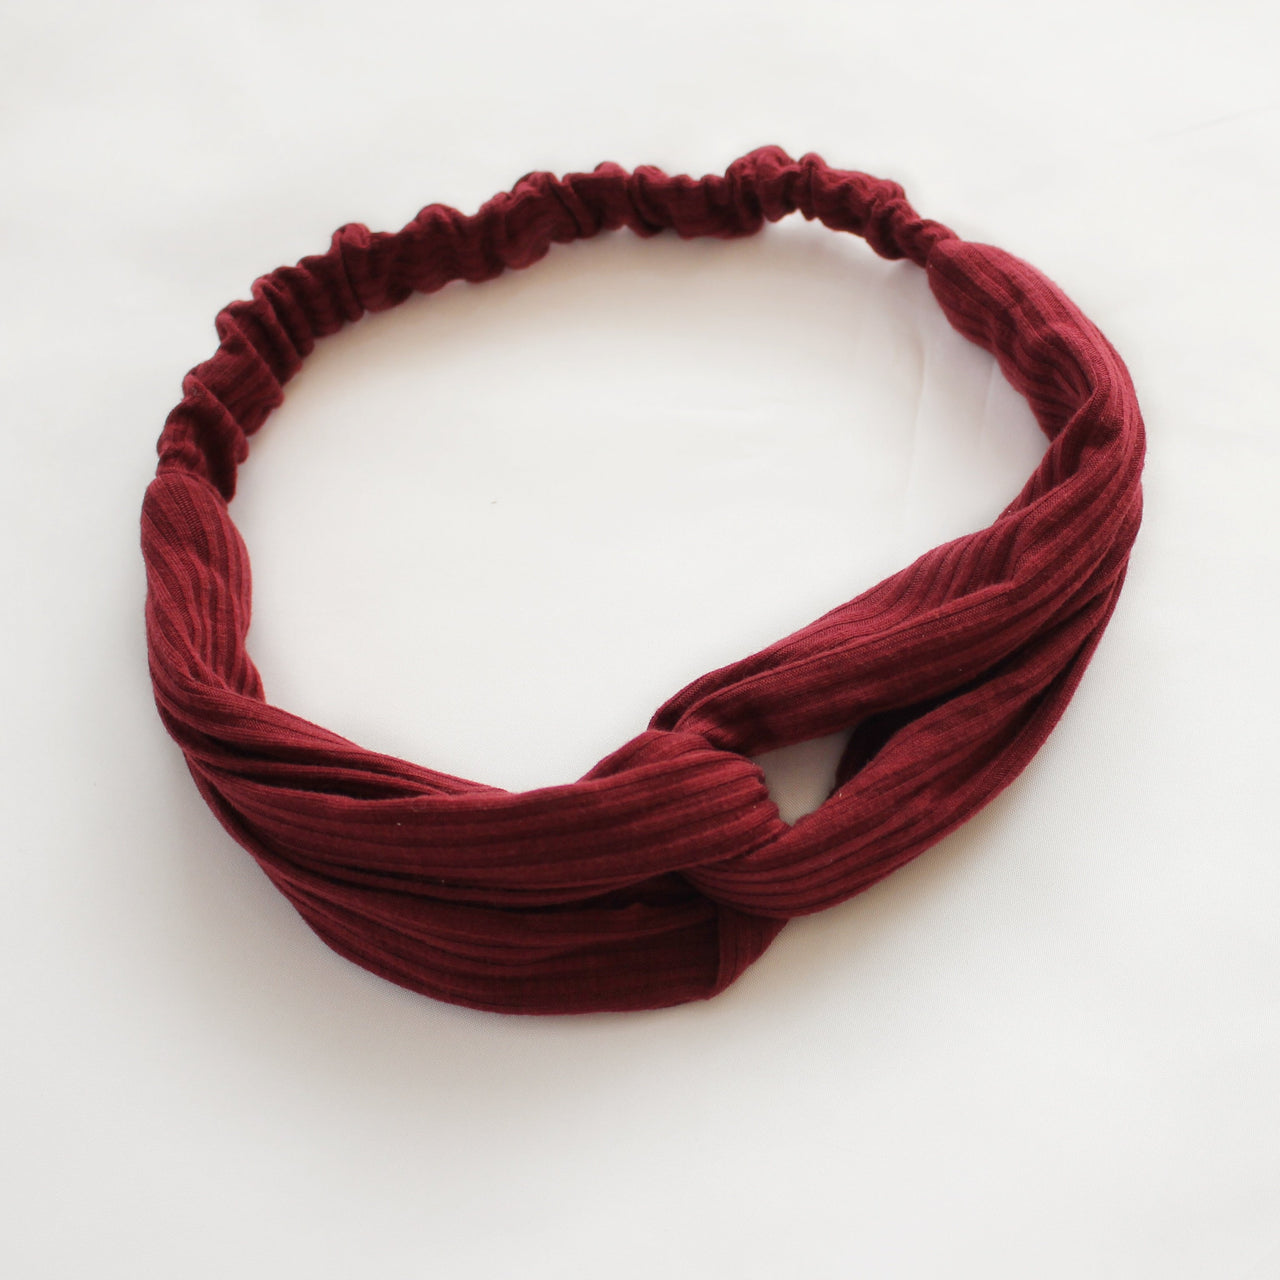 Headband - LovelyMadness Clothing Online Fashion Malaysia